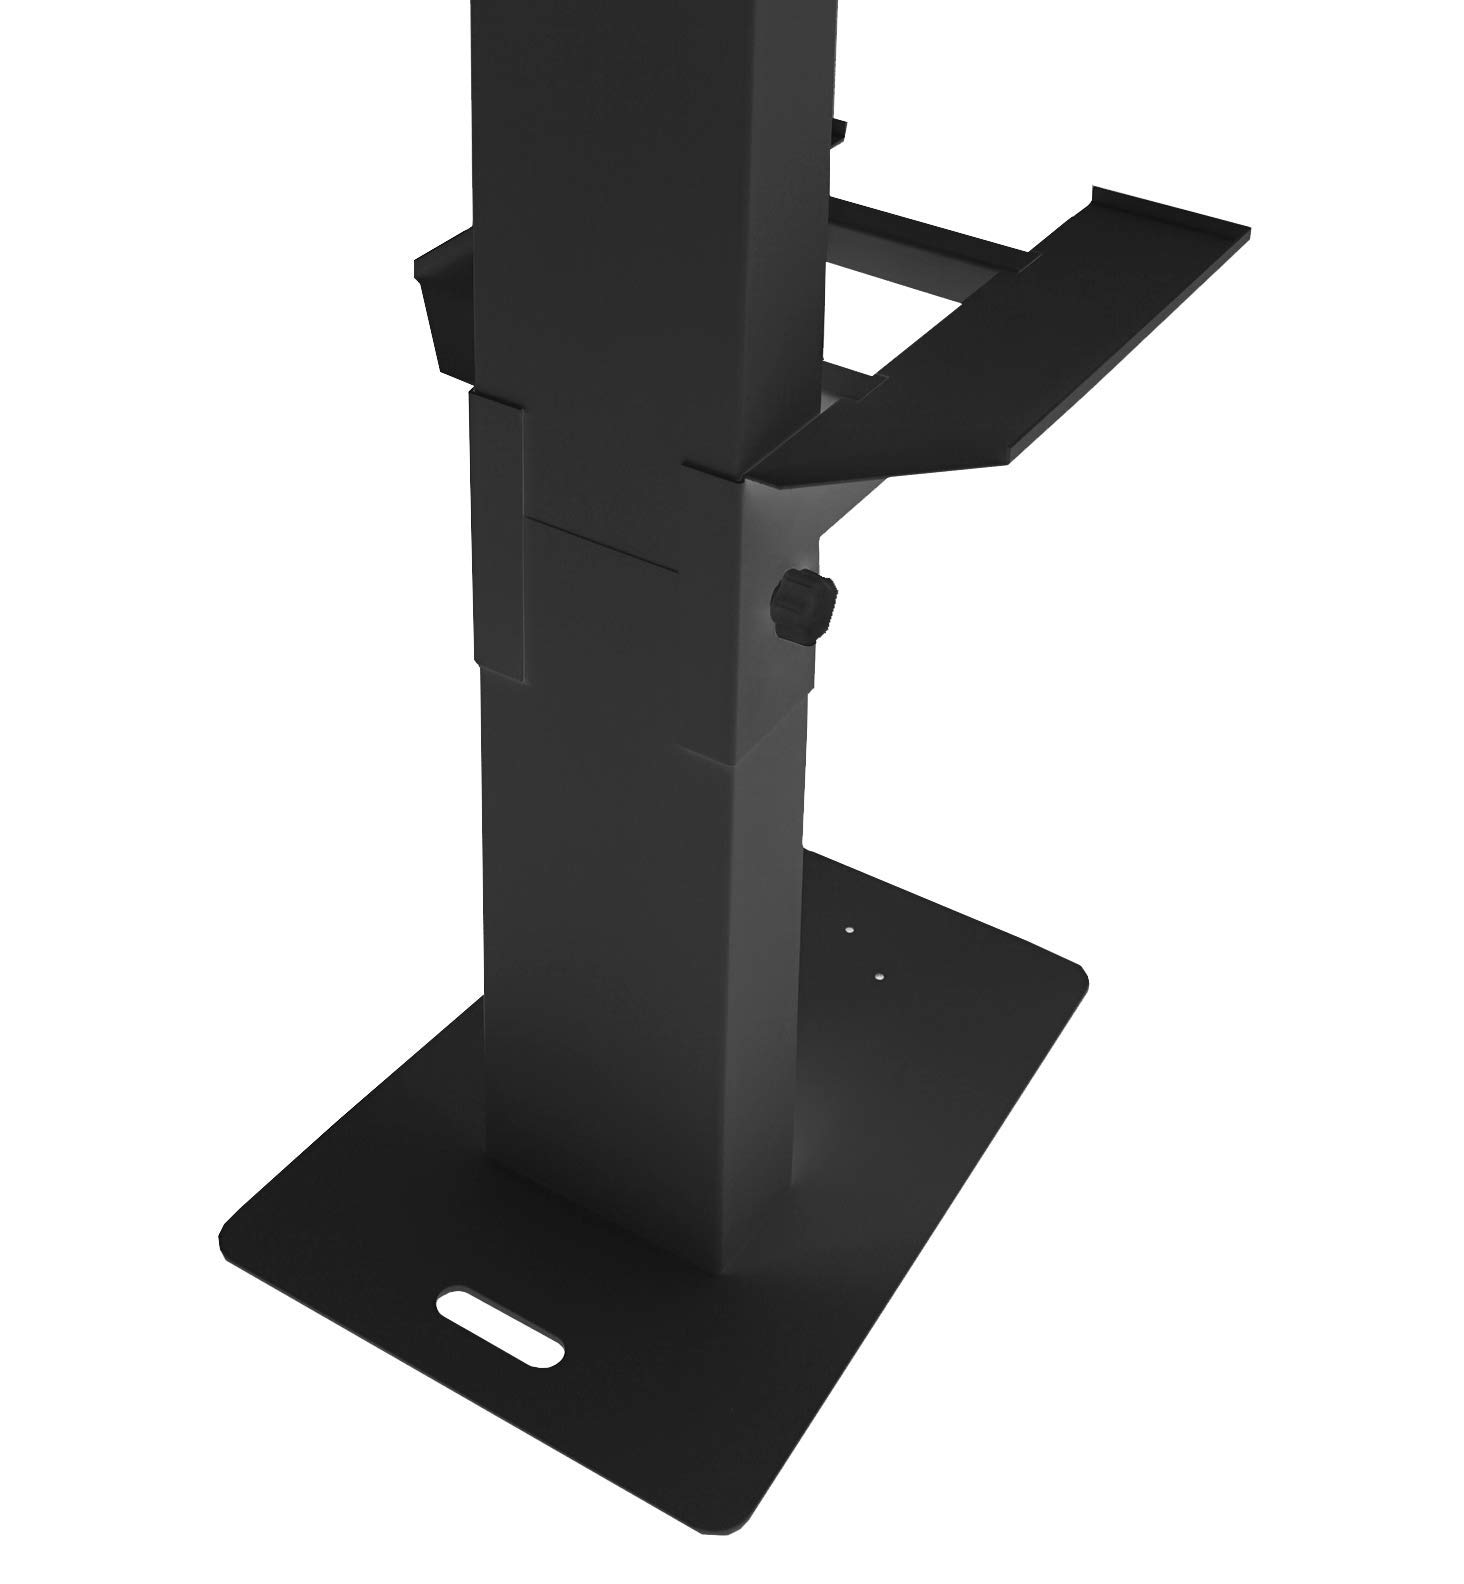 T- Series Black Printer Shelf for T12 3.0 Eco Planar / T12 LED / T17 4.0 / T20 2.0 Eco Planar / T20R 2.0 Photobooth Shell by Boothify (Image #1)